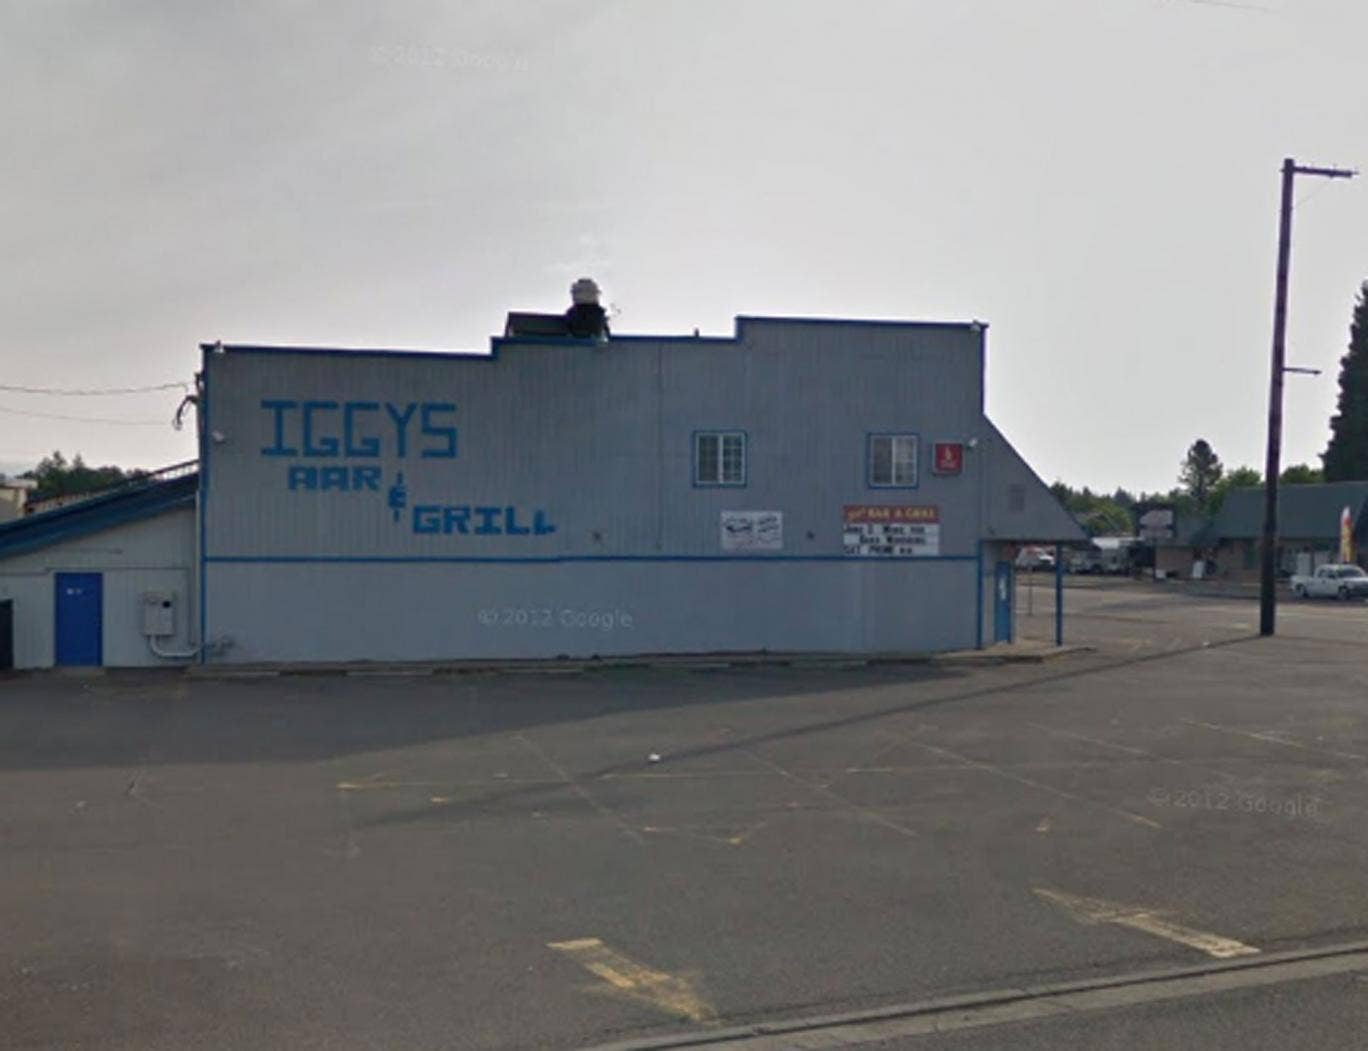 The alleged incident happened at Iggy's Bar and Grill, Oregon